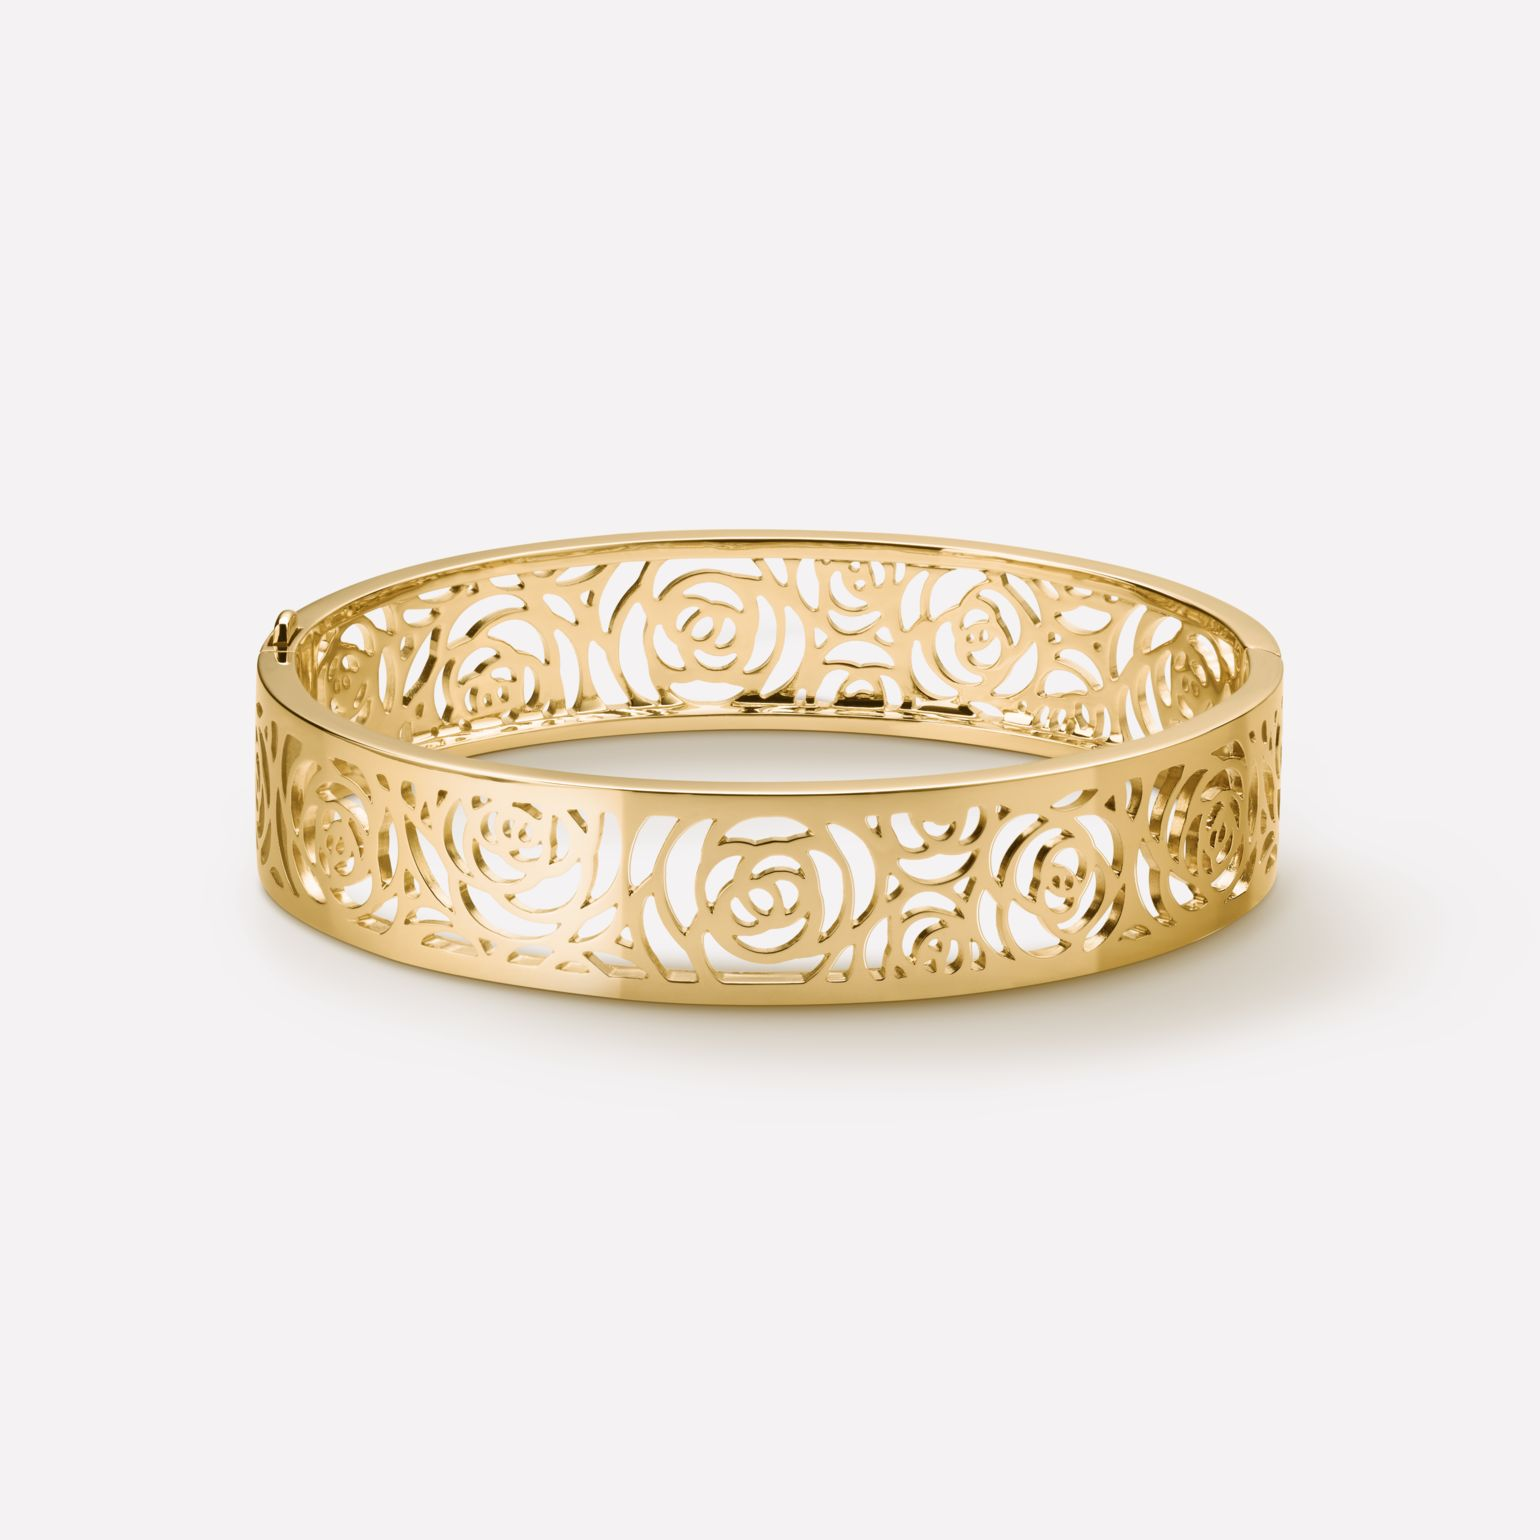 Camélia Bracelet Camélia Ajouré bangle in 18K yellow gold